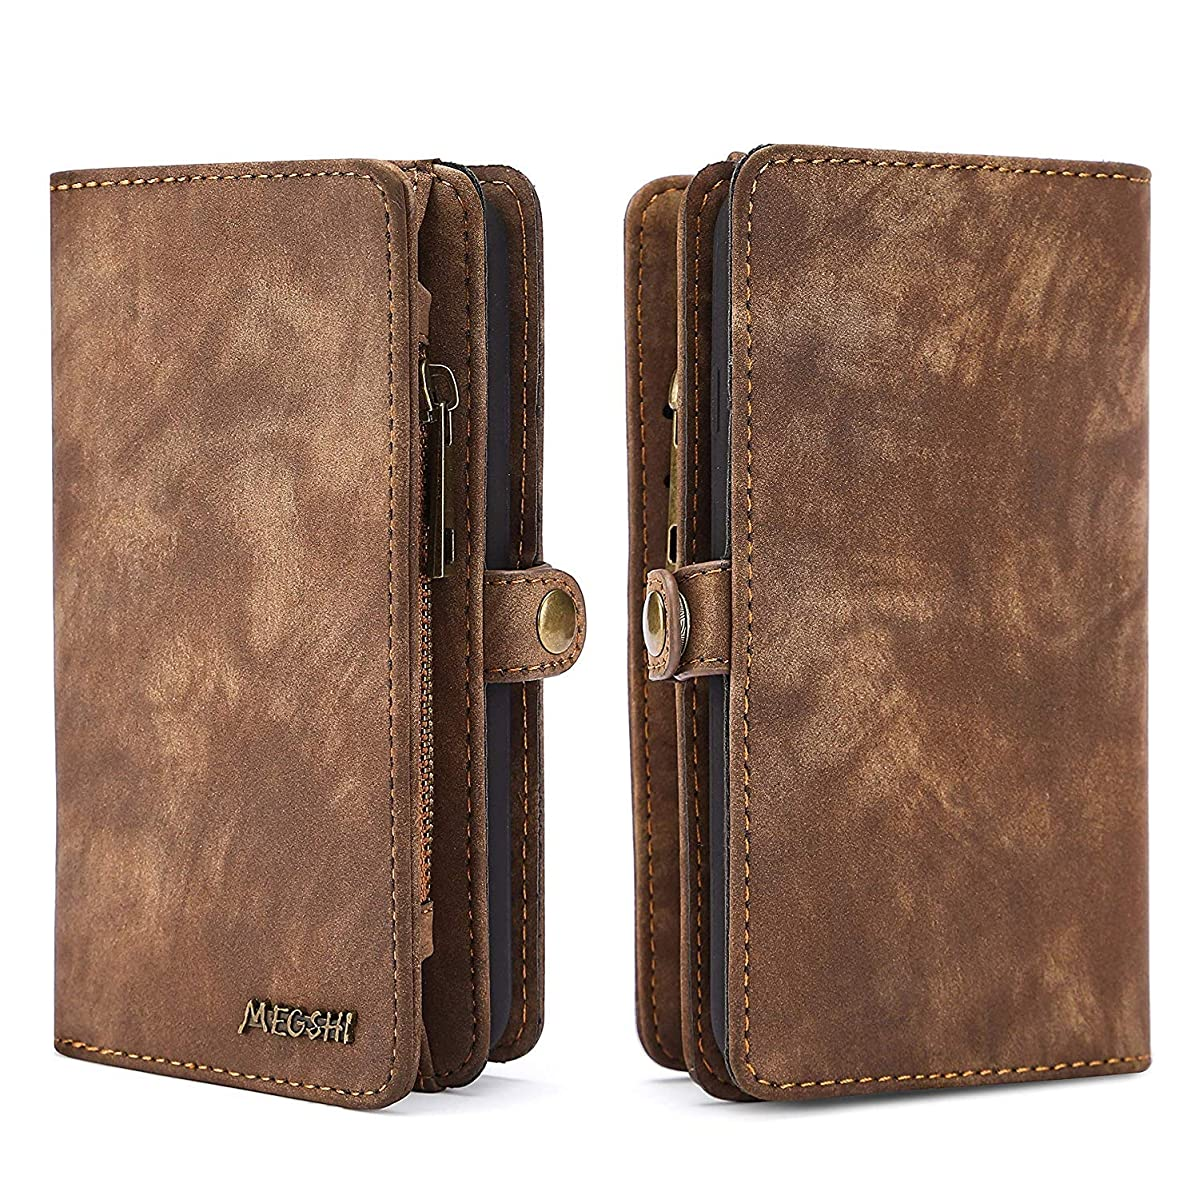 Spritech Galaxy Note 9 Wallet Case,Handmade Leather Large Capacity Detachable [Scratch Resistant] Zipper Wallet Cover with Credit Card Holder for Samsung Galaxy Note 9 (2018 Release)